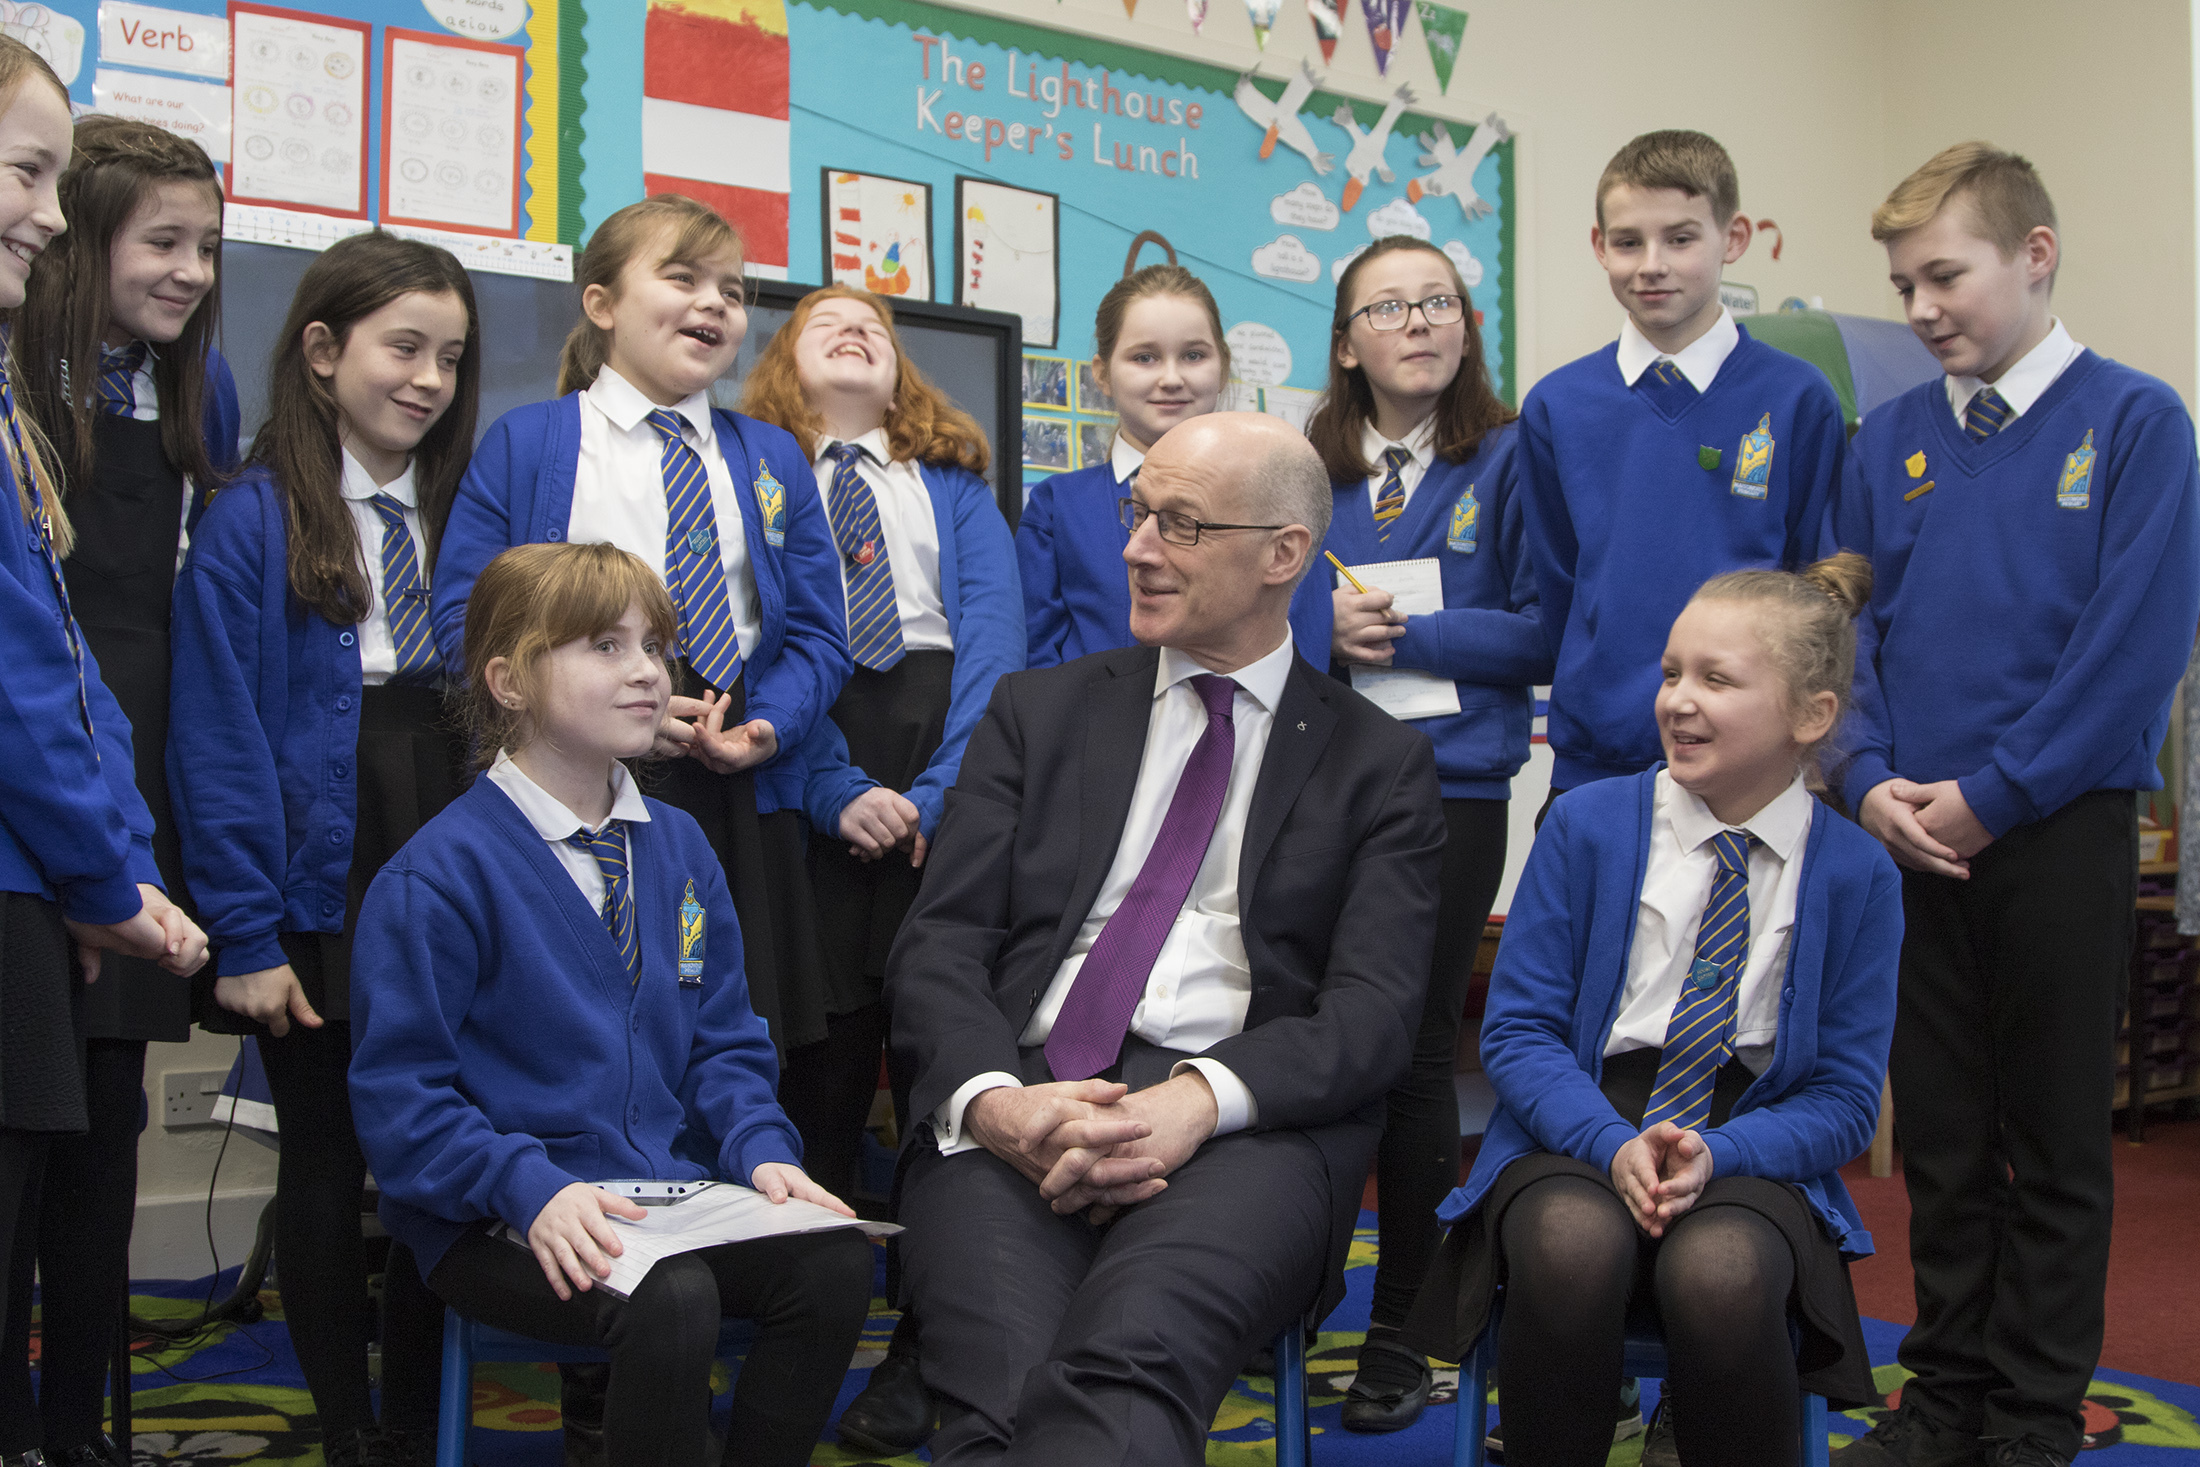 Deputy First Minister John Swinney saw the work being done at Maisondieu Primary on mental health and well-being during a recent visit.